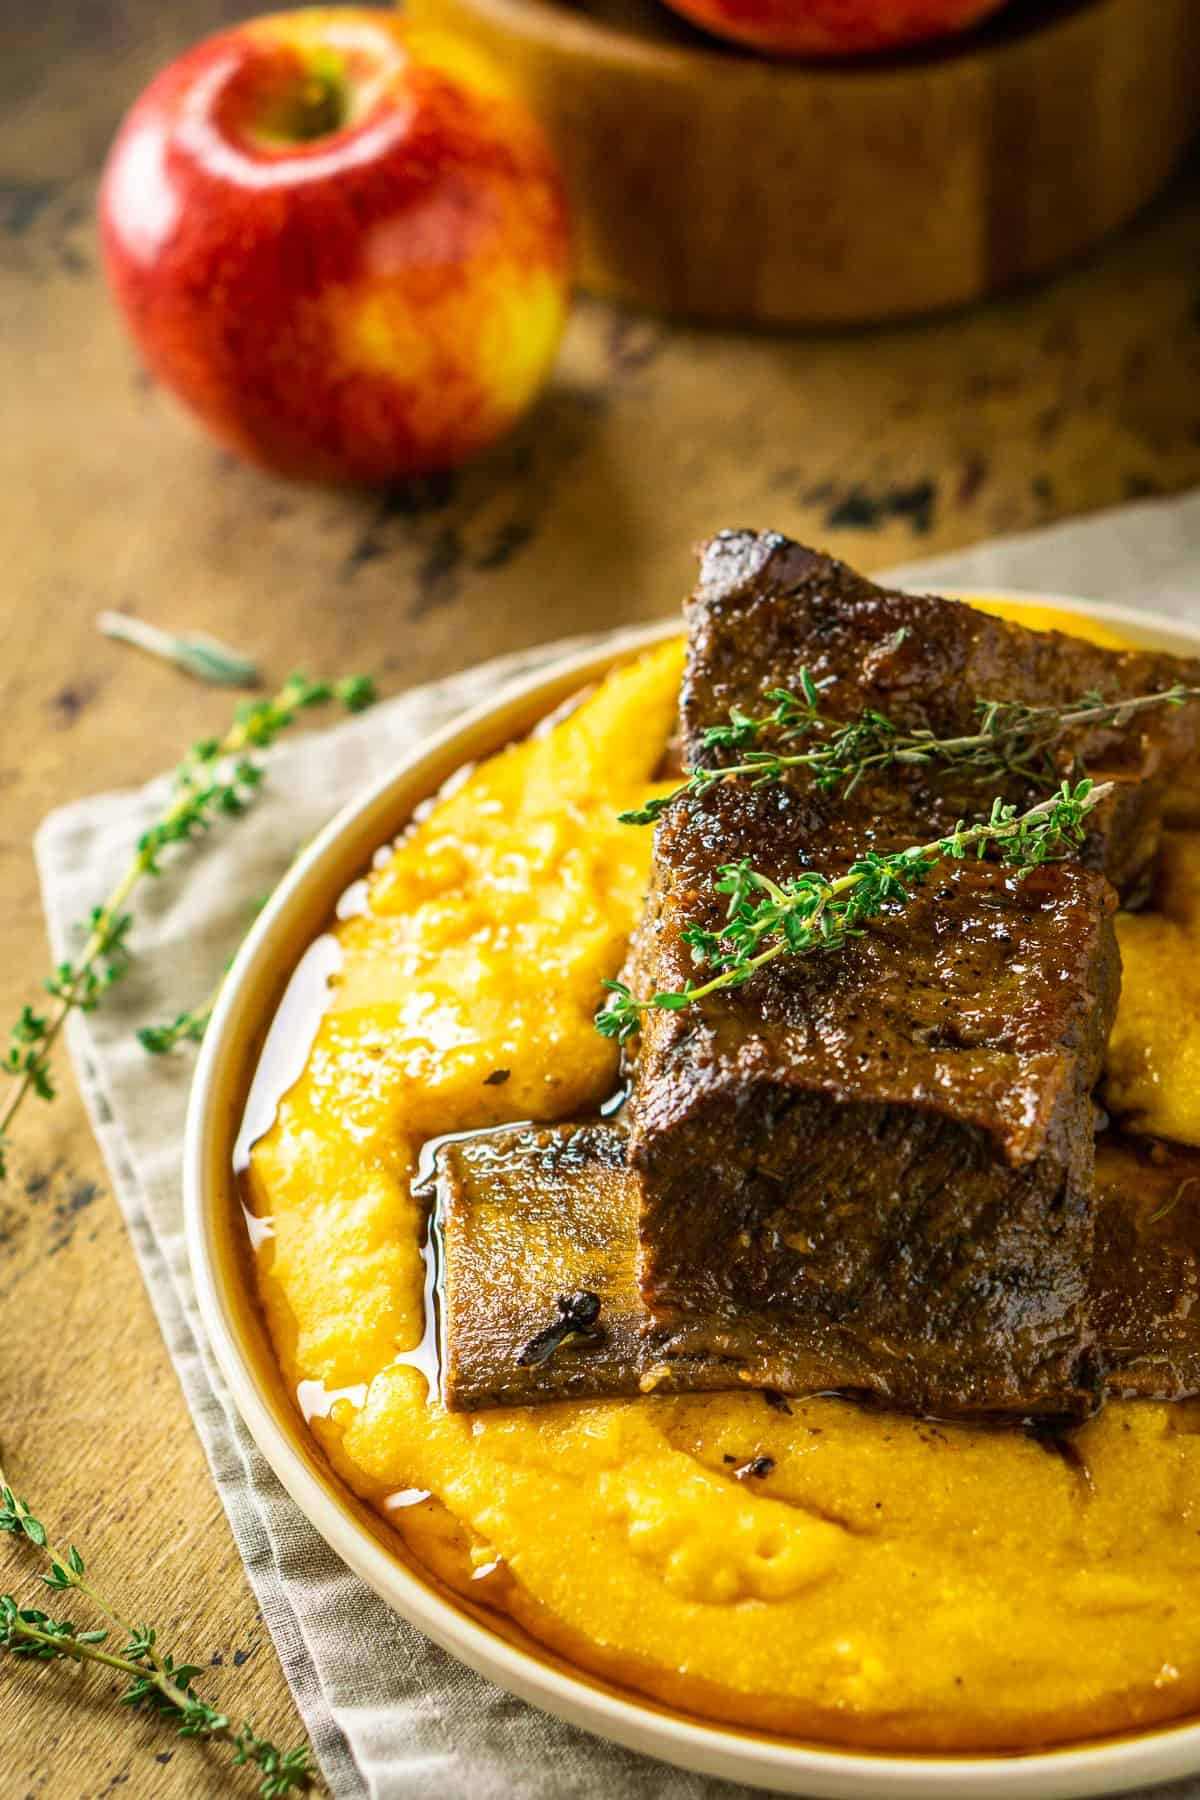 Looking down on two braised apple cider short ribs with an apple to the side.